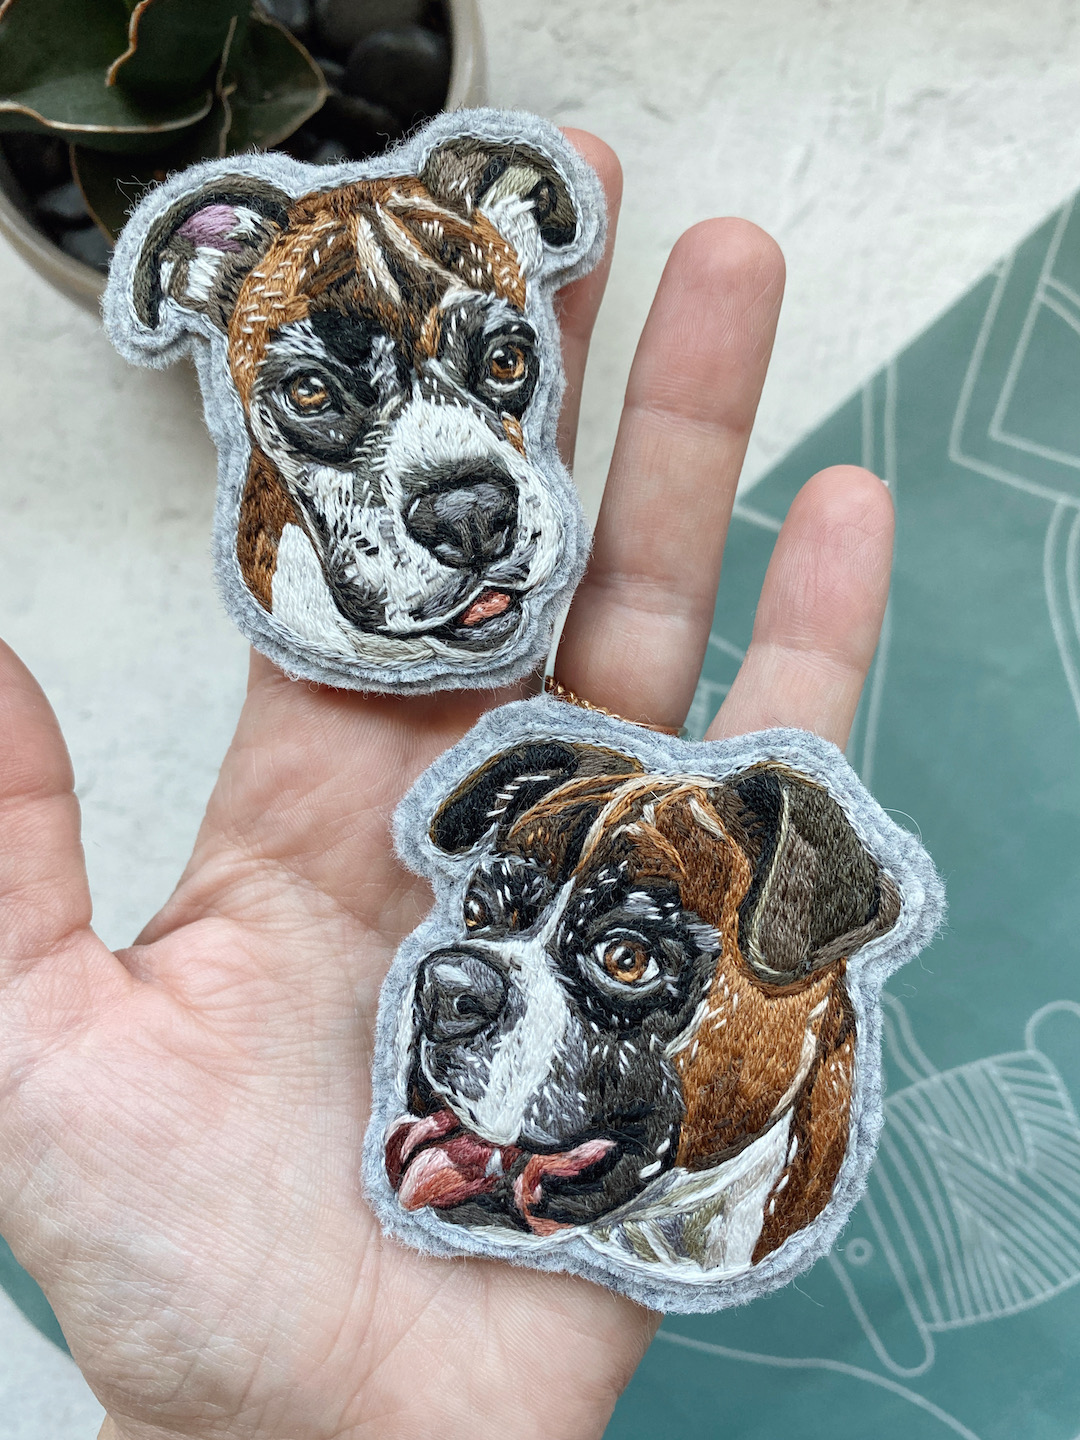 Custom embroidered pet portrait of a dog